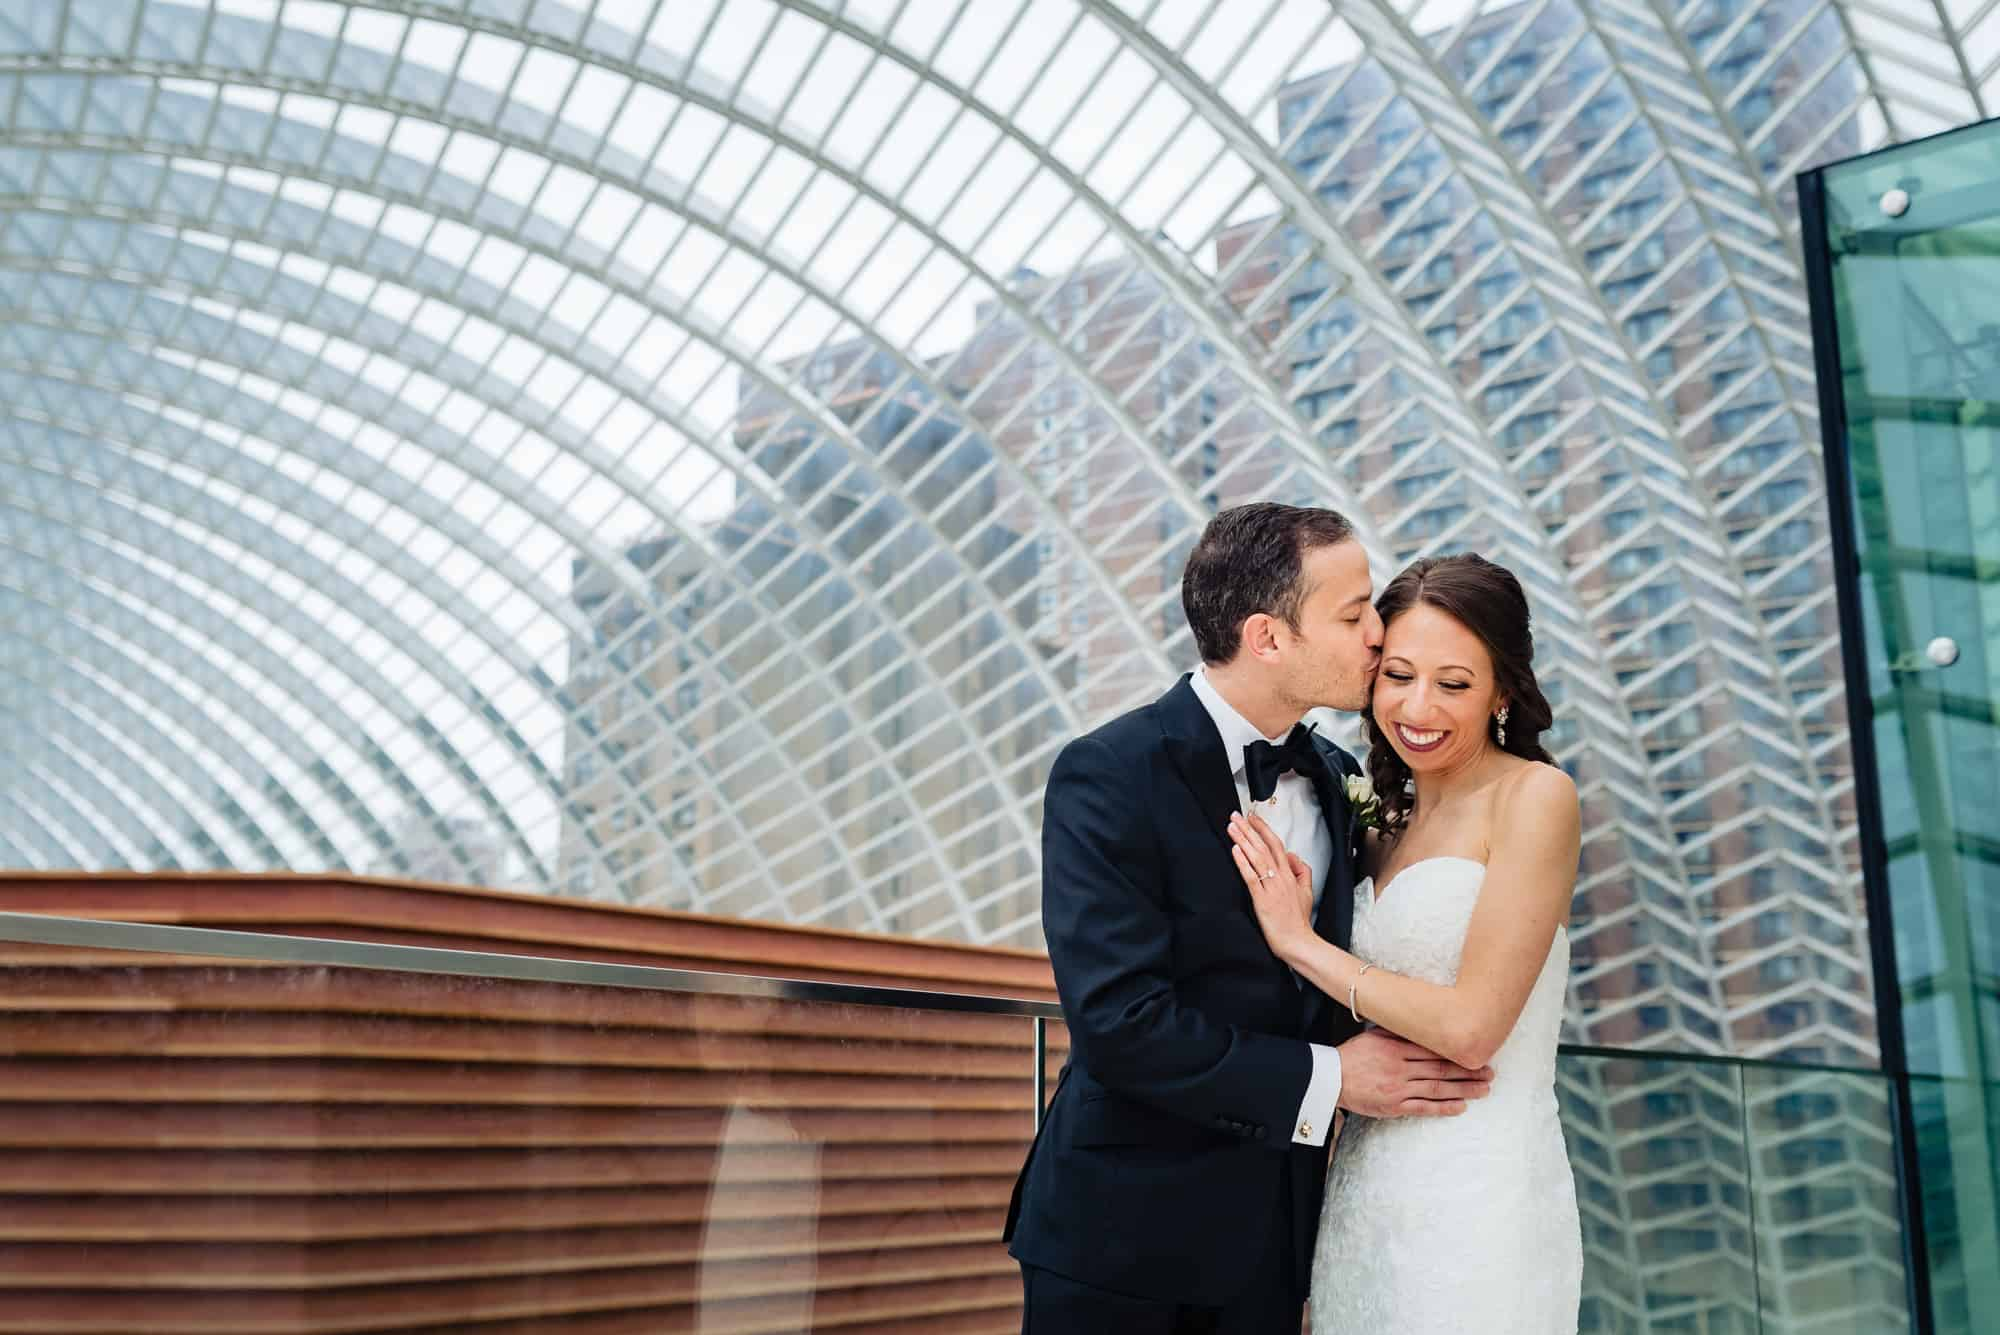 groom kissing bride on cheek at the Kimmel Center for the Performing Arts